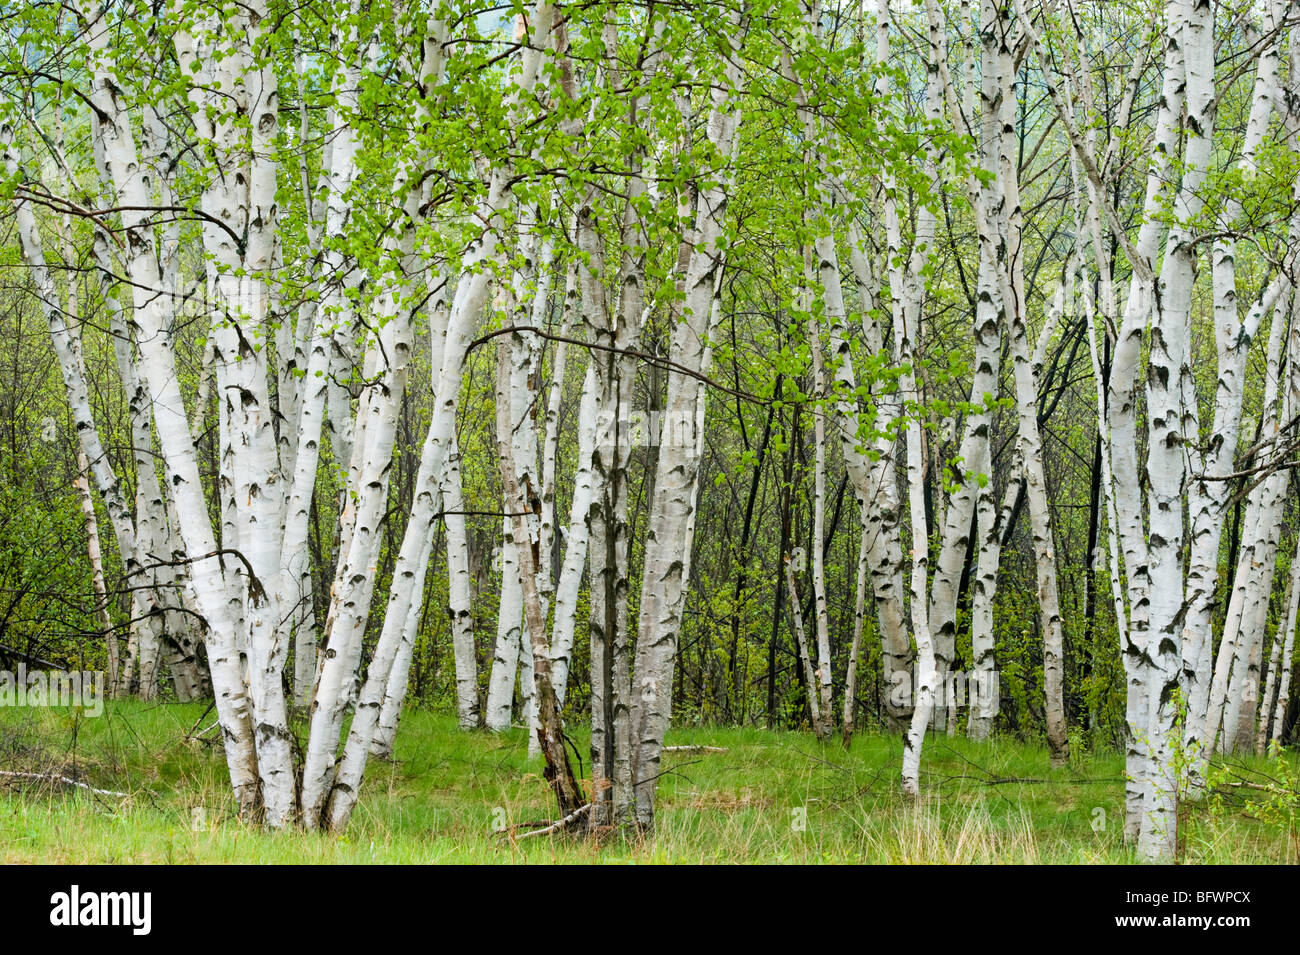 Birch trees with emerging foliage in spring, Greater Sudbury, Ontario, Canada - Stock Image